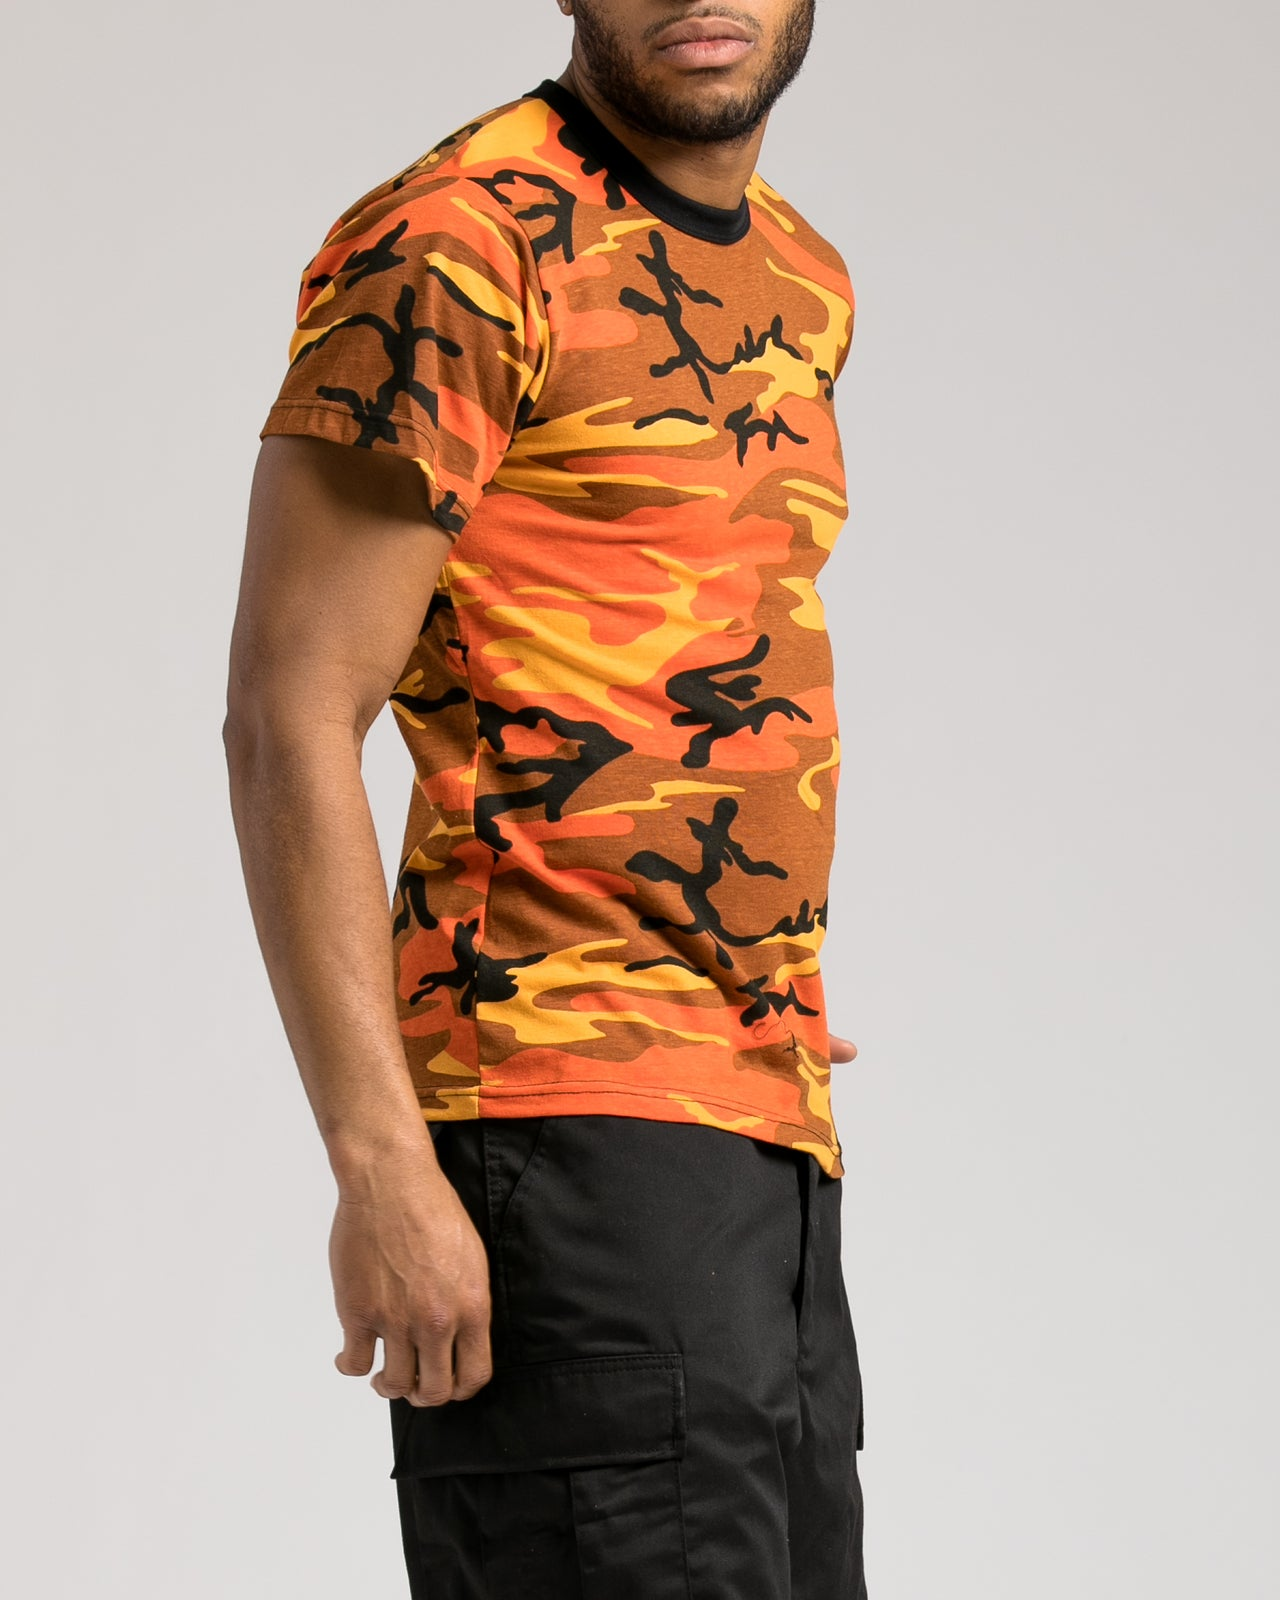 Camo Tee - Color: Savage Orange Camo | Orange